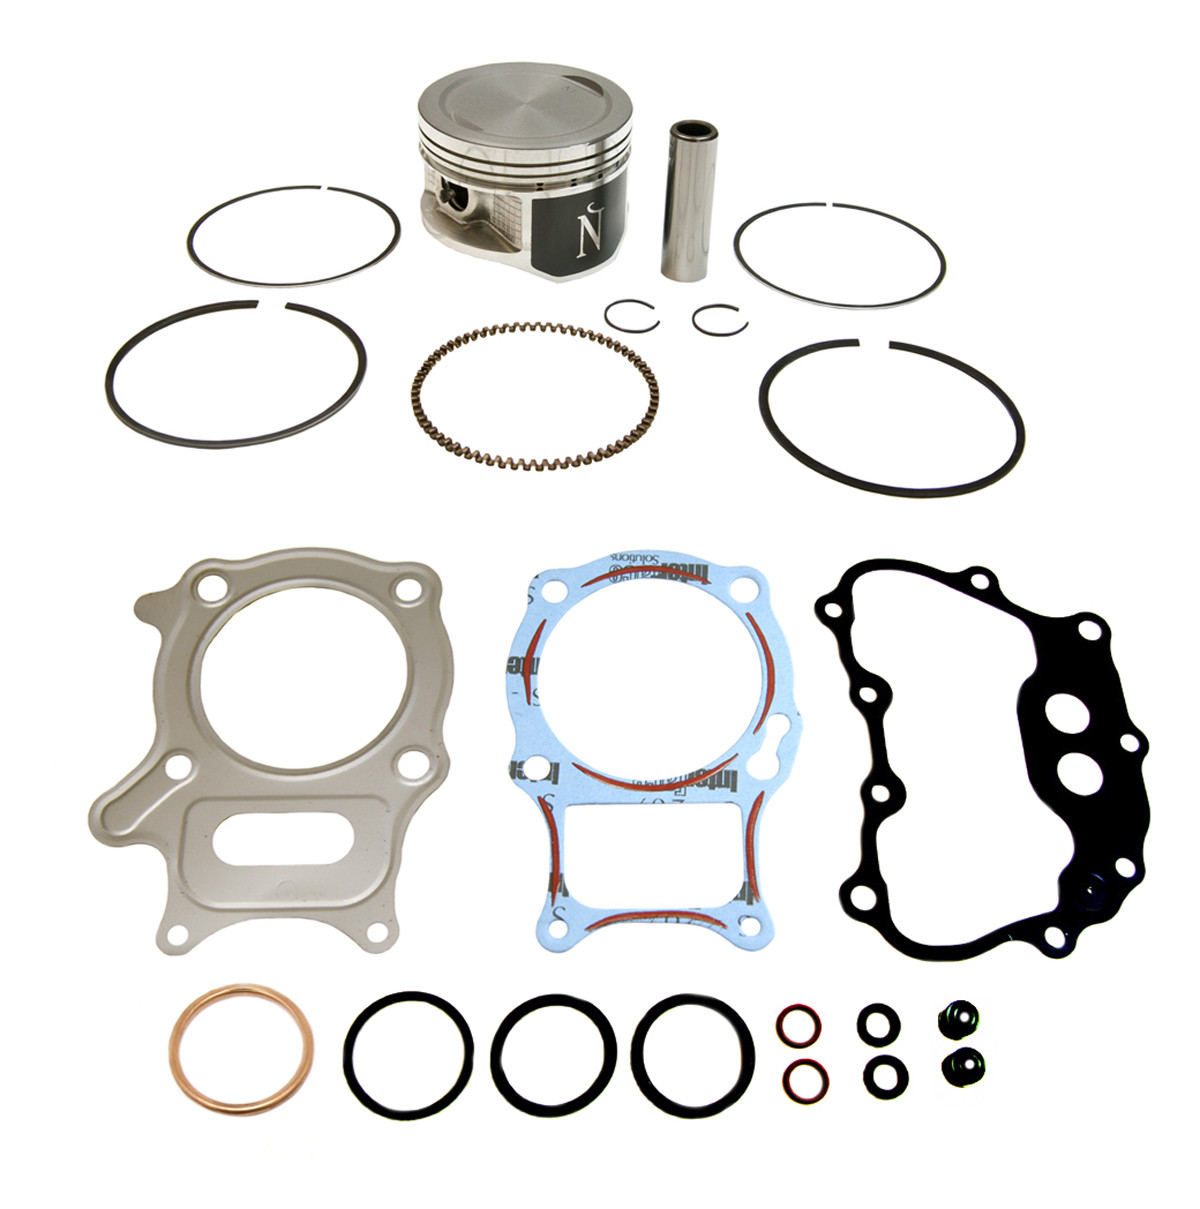 Honda TRX250EX TRX250X /& 250 Recon 68.50 mm STD Bore Namura Piston Gaskets Seals